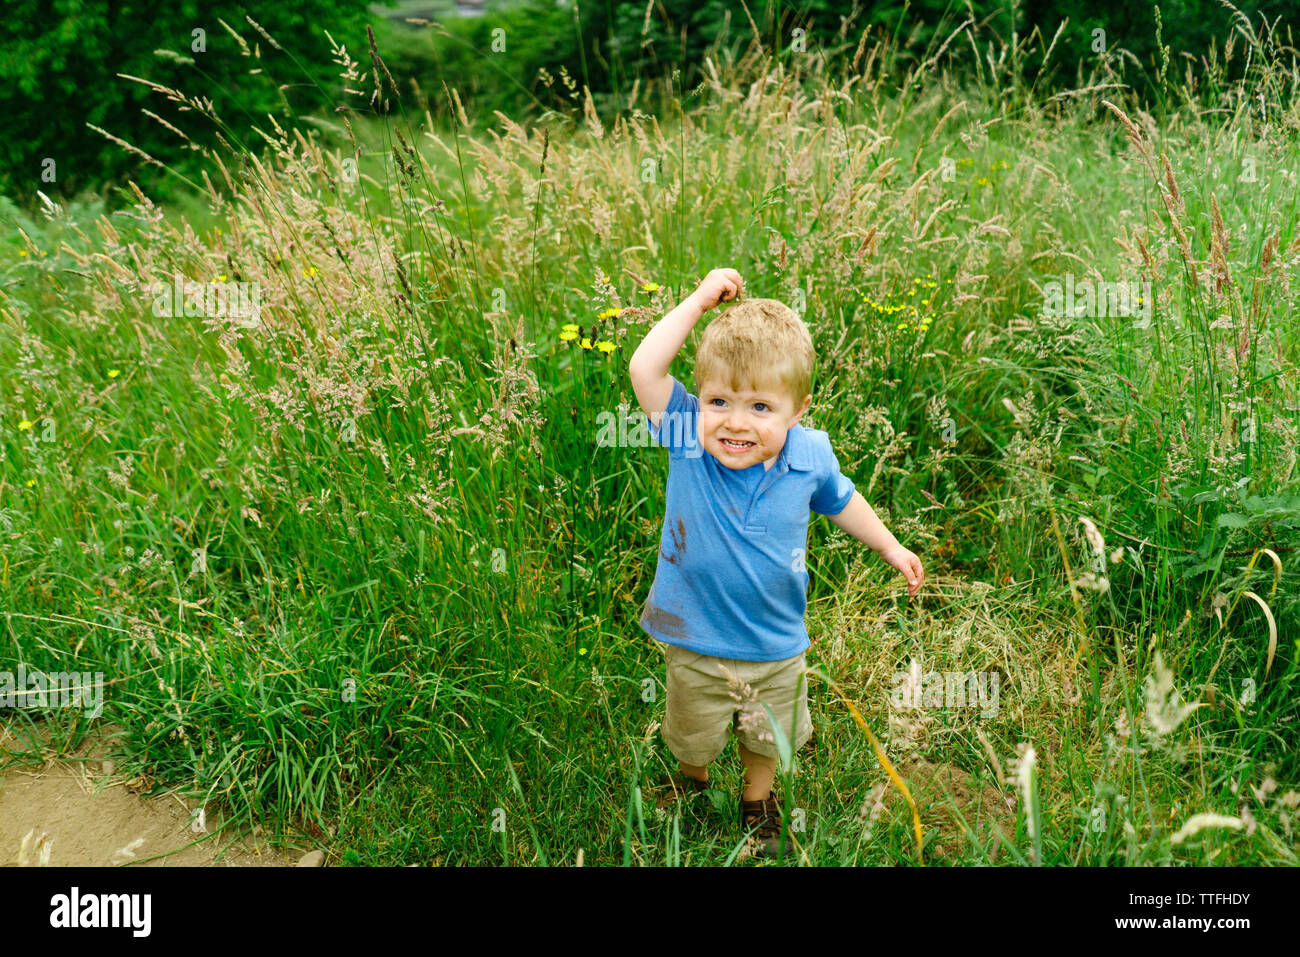 View from above of a young boy playing in the dirt - Stock Image